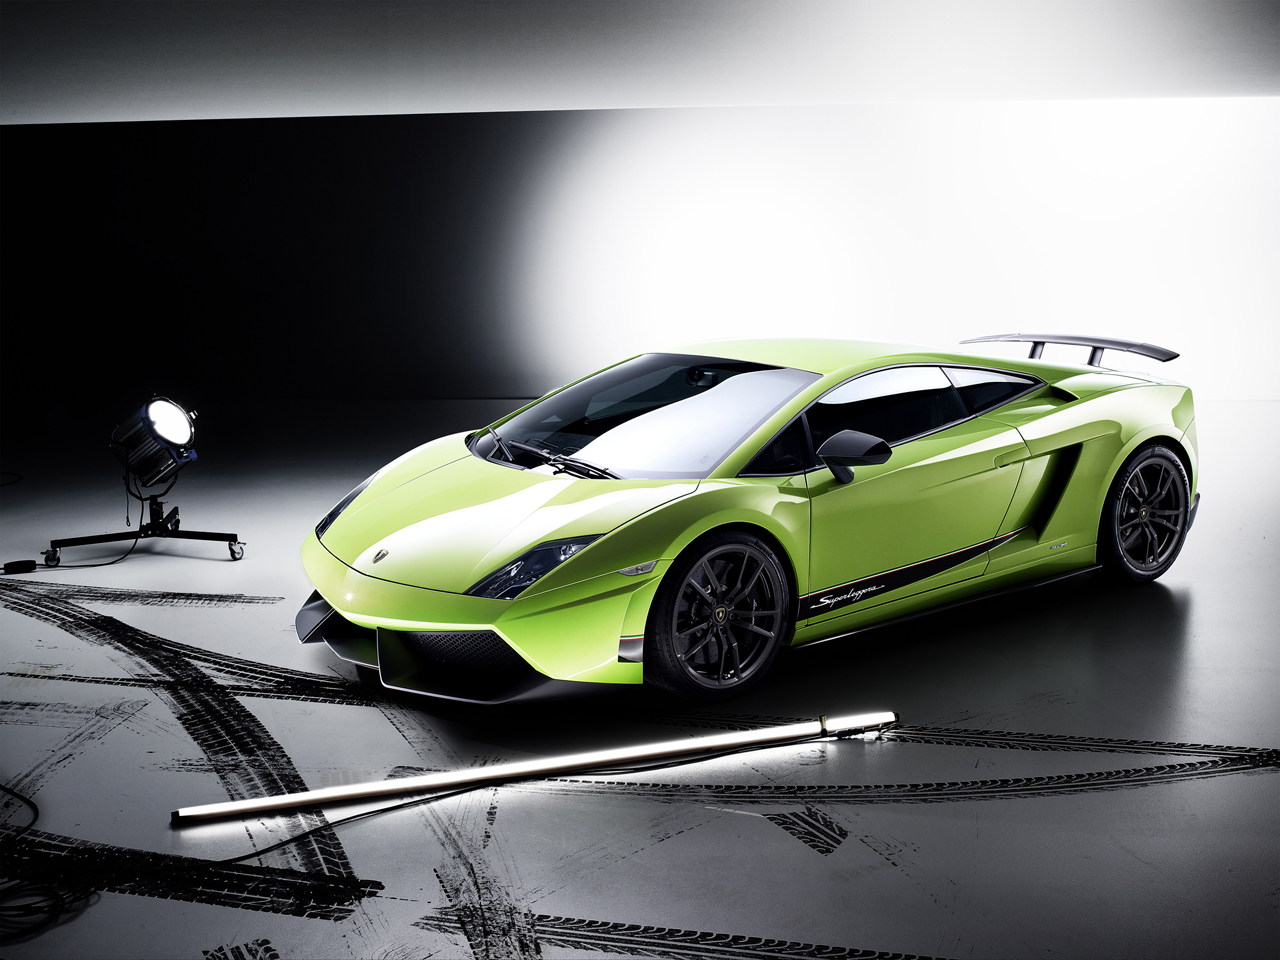 2011 Lamborghini Gallardo 570 4 Superleggera Debuts In Geneva